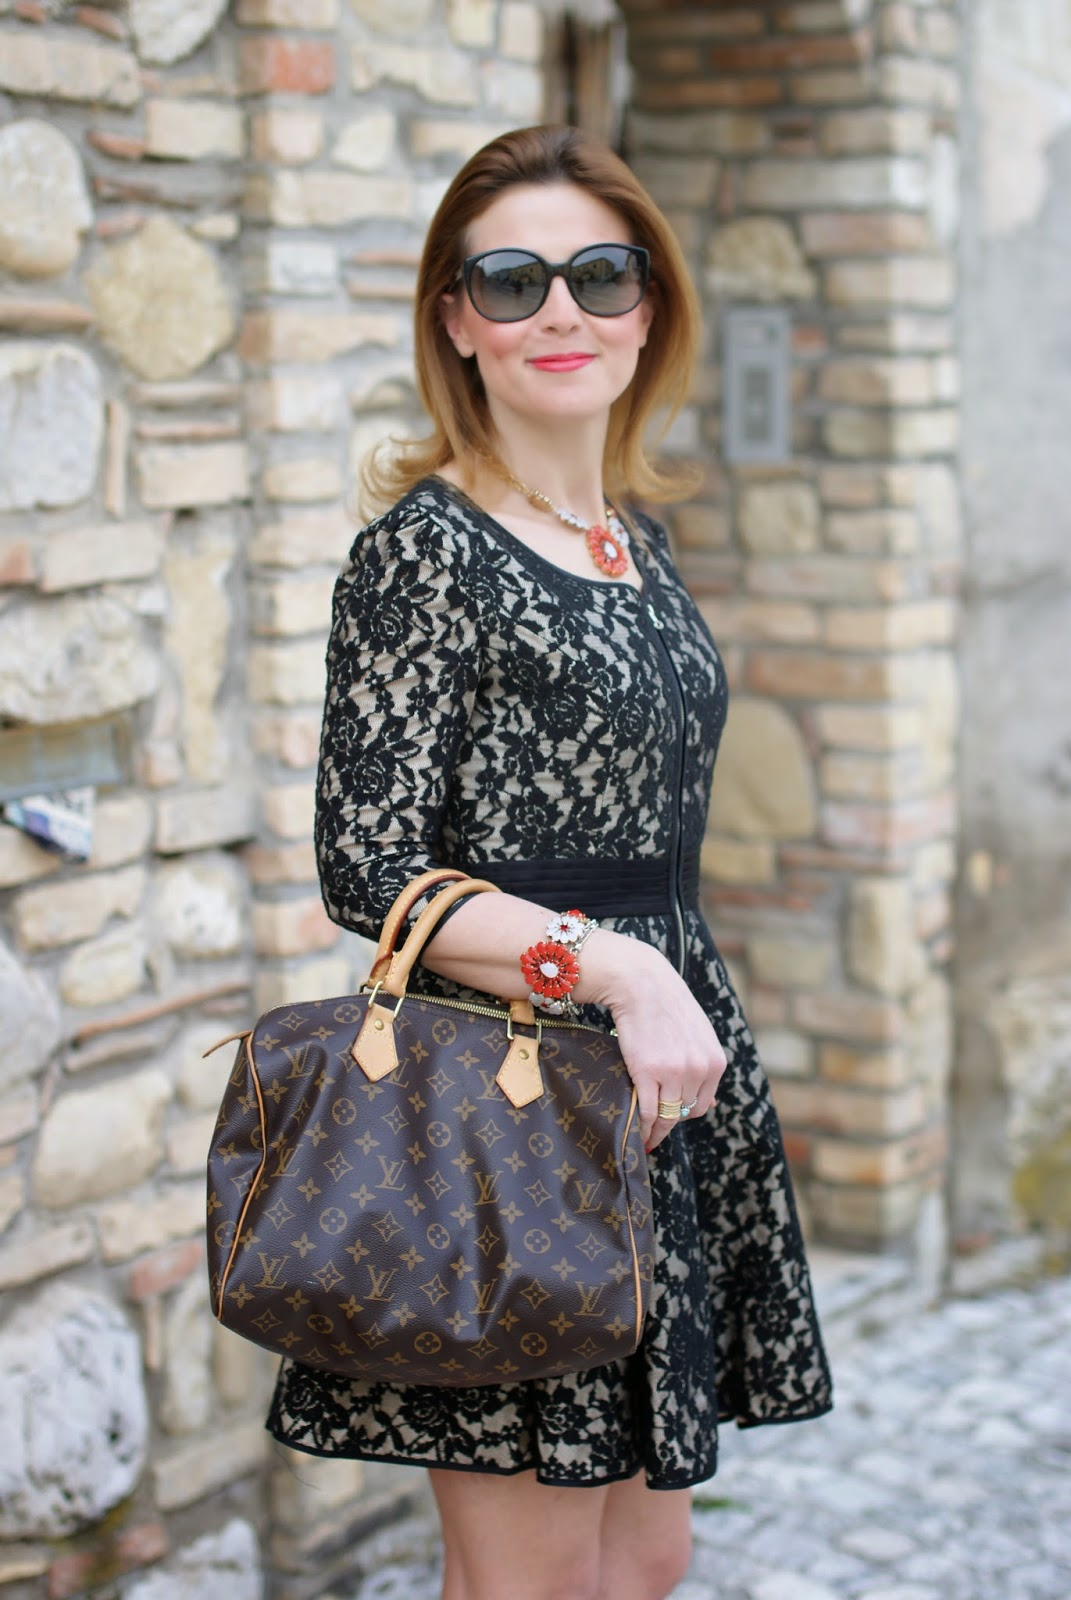 Sodini bijoux, Louis Vuitton Speedy bag, Miu Miu sunglasses, Fashion and Cookies, fashion blogger